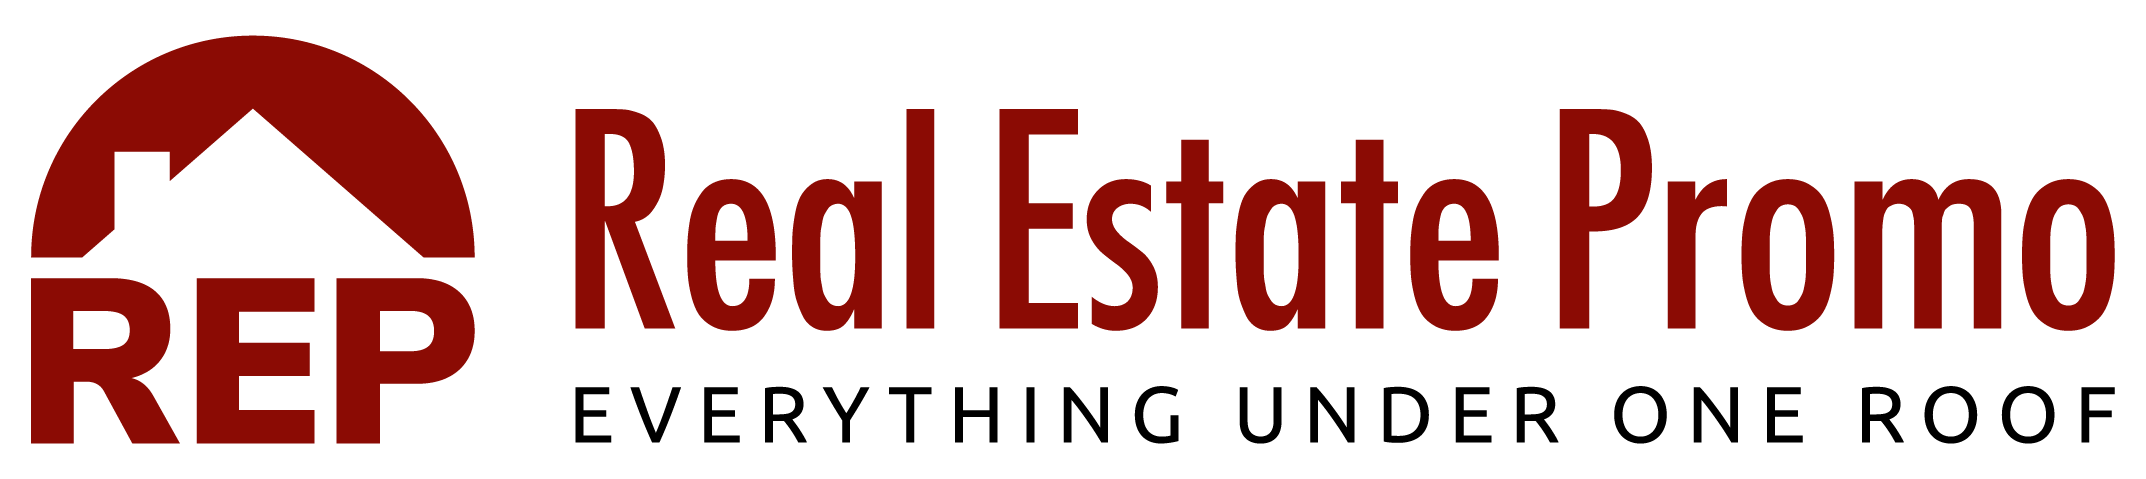 Visit Real Estate Promo